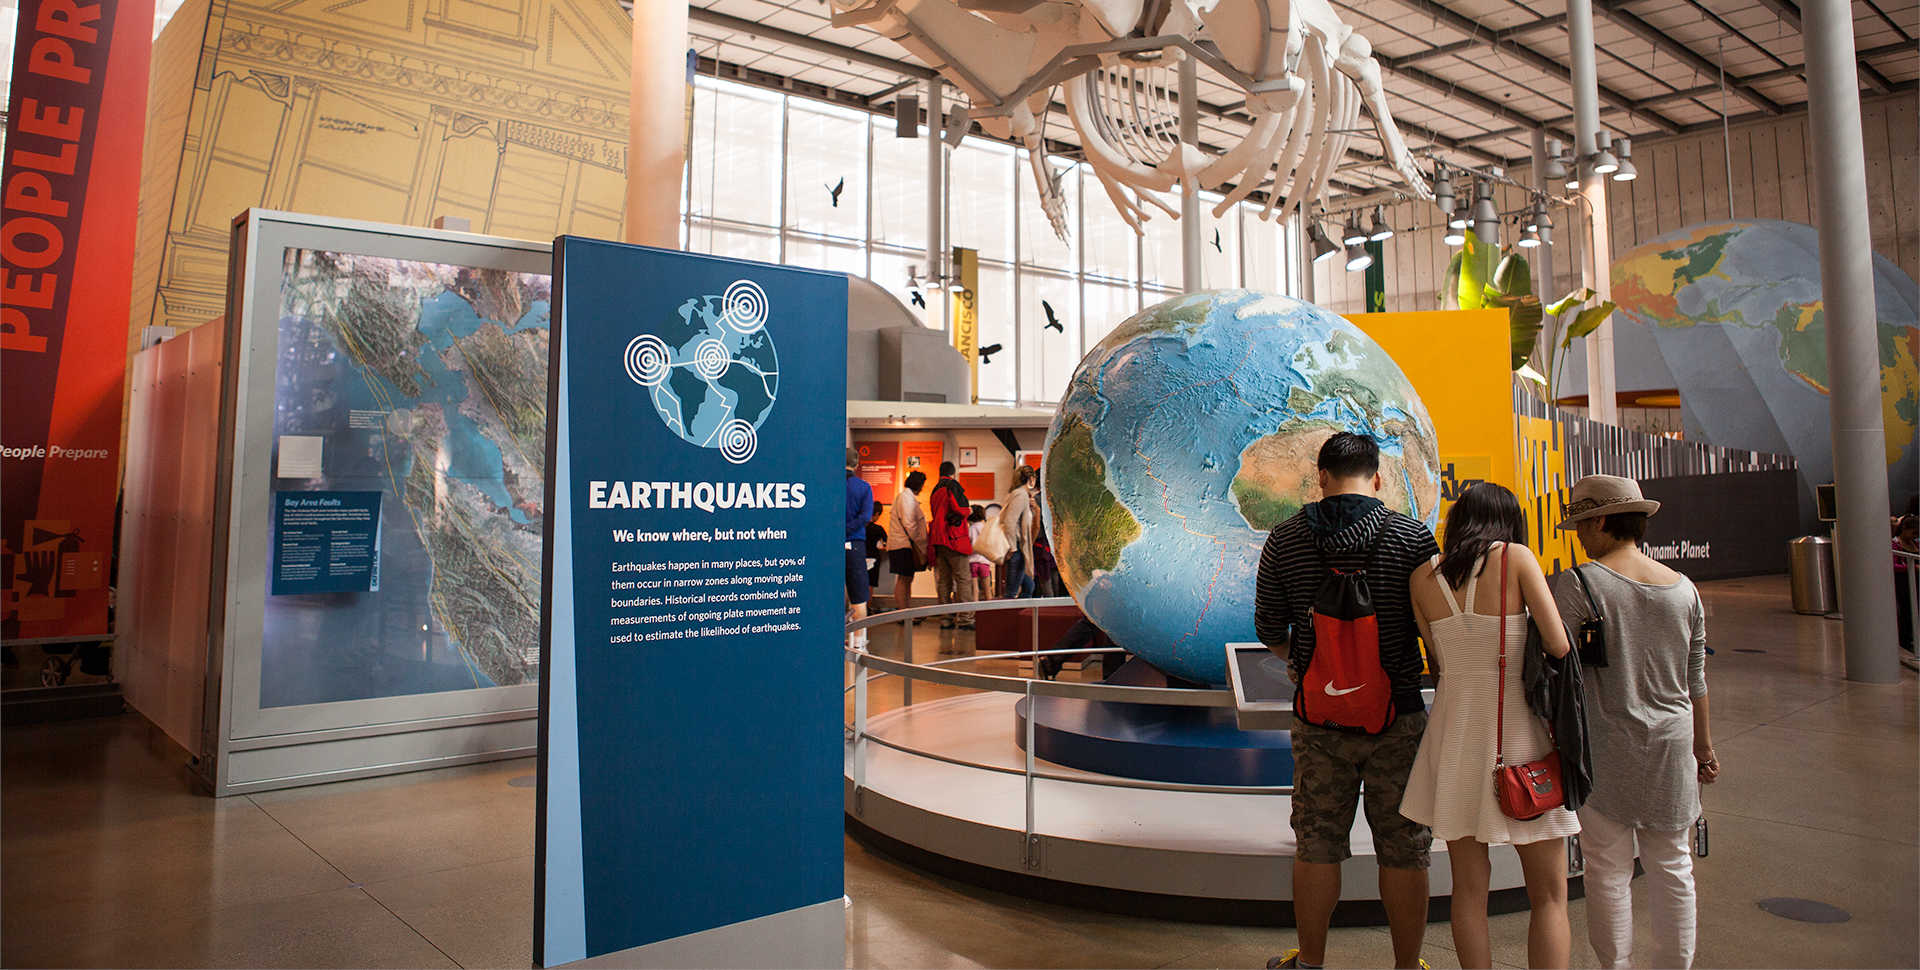 Visitors examine a giant globe at Earthquake, a major exhibit at the California Academy of Sciences